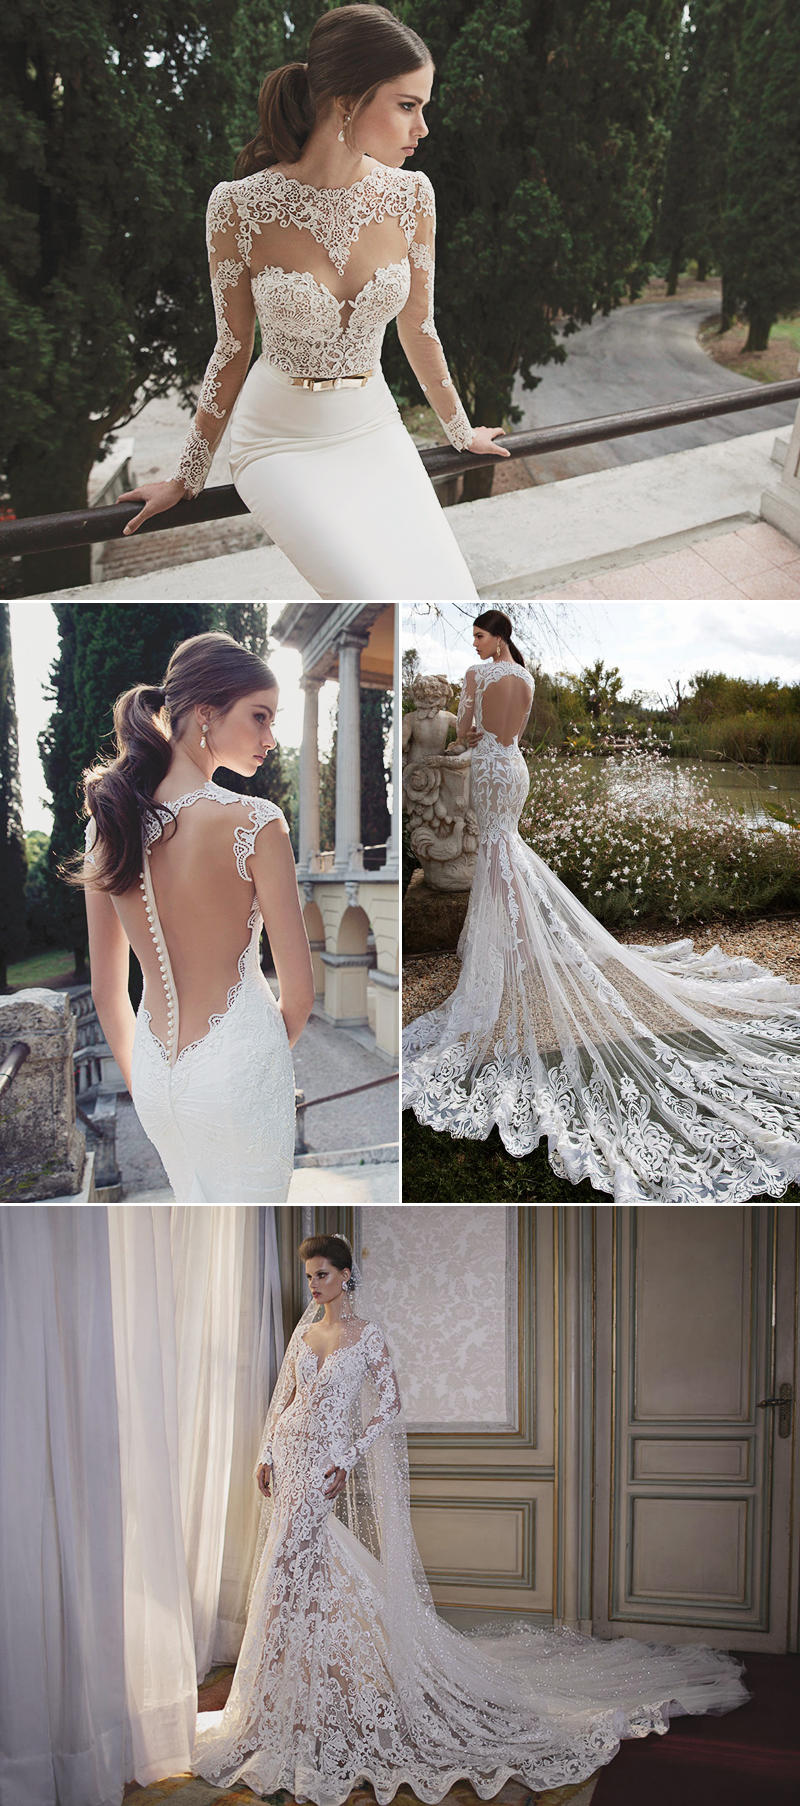 Berta Bridal Wedding Dresses For Modern Fashion Forward Brides Praise Wedding